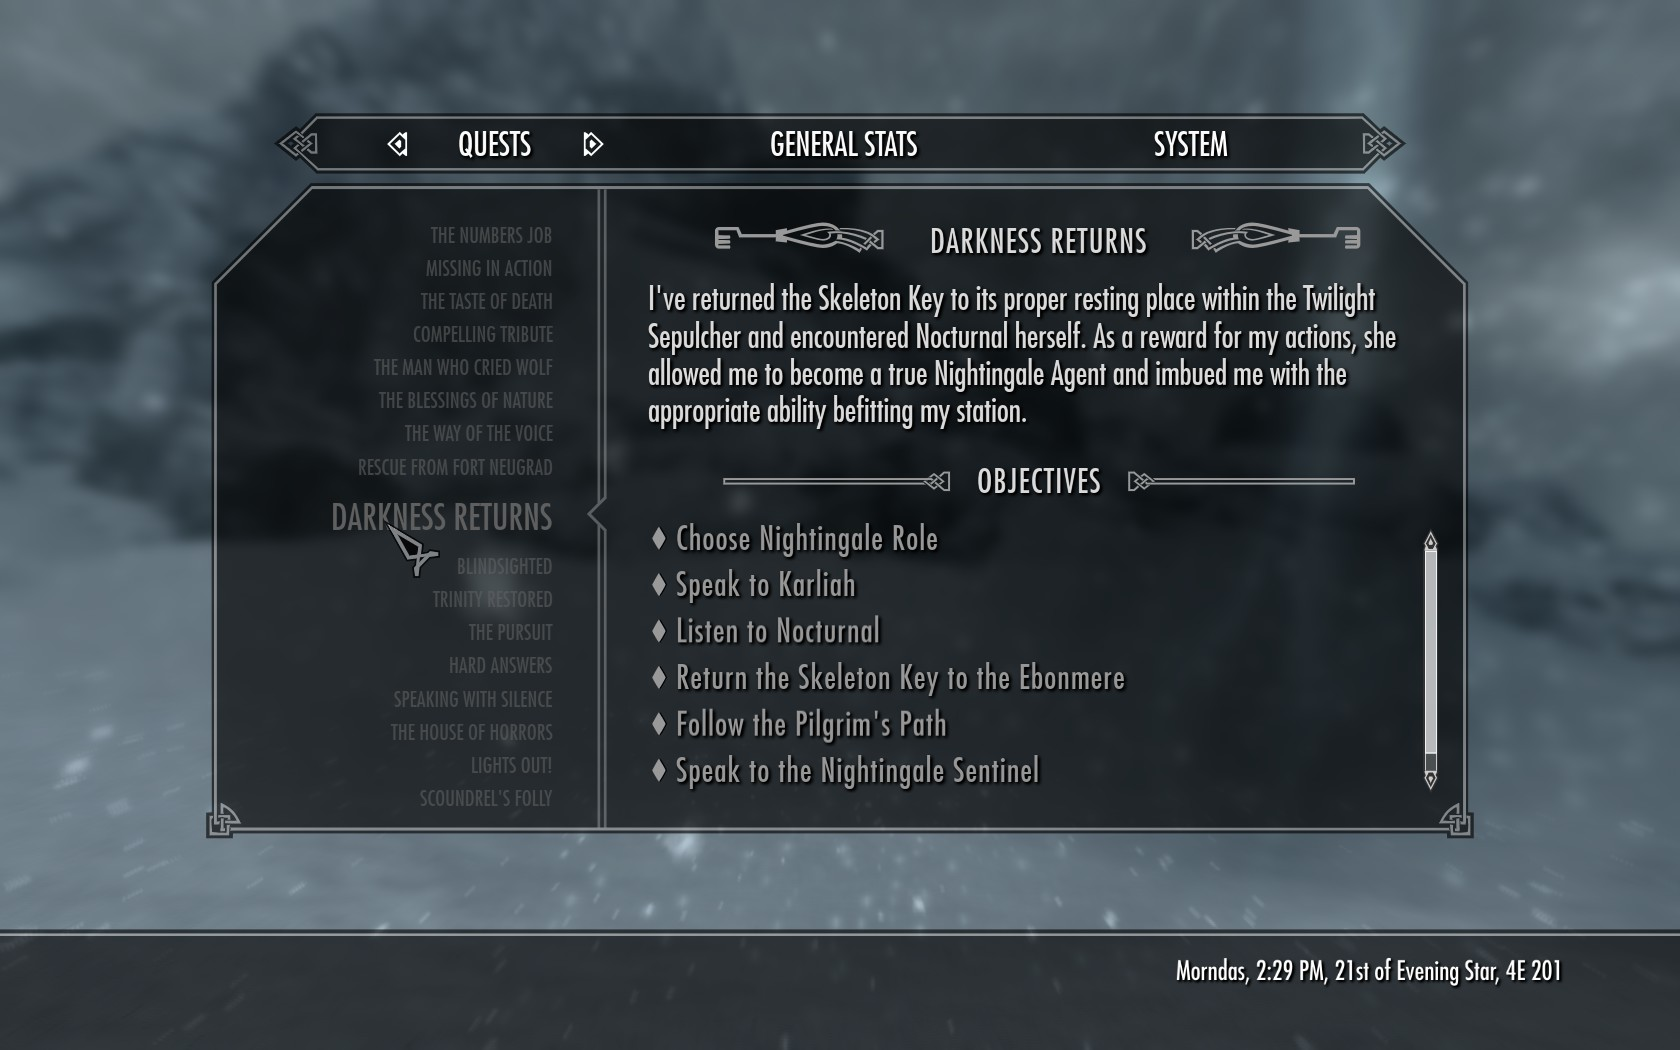 Steam Skyrim Achievements Are Locked Although Ive Completed Them Arqade